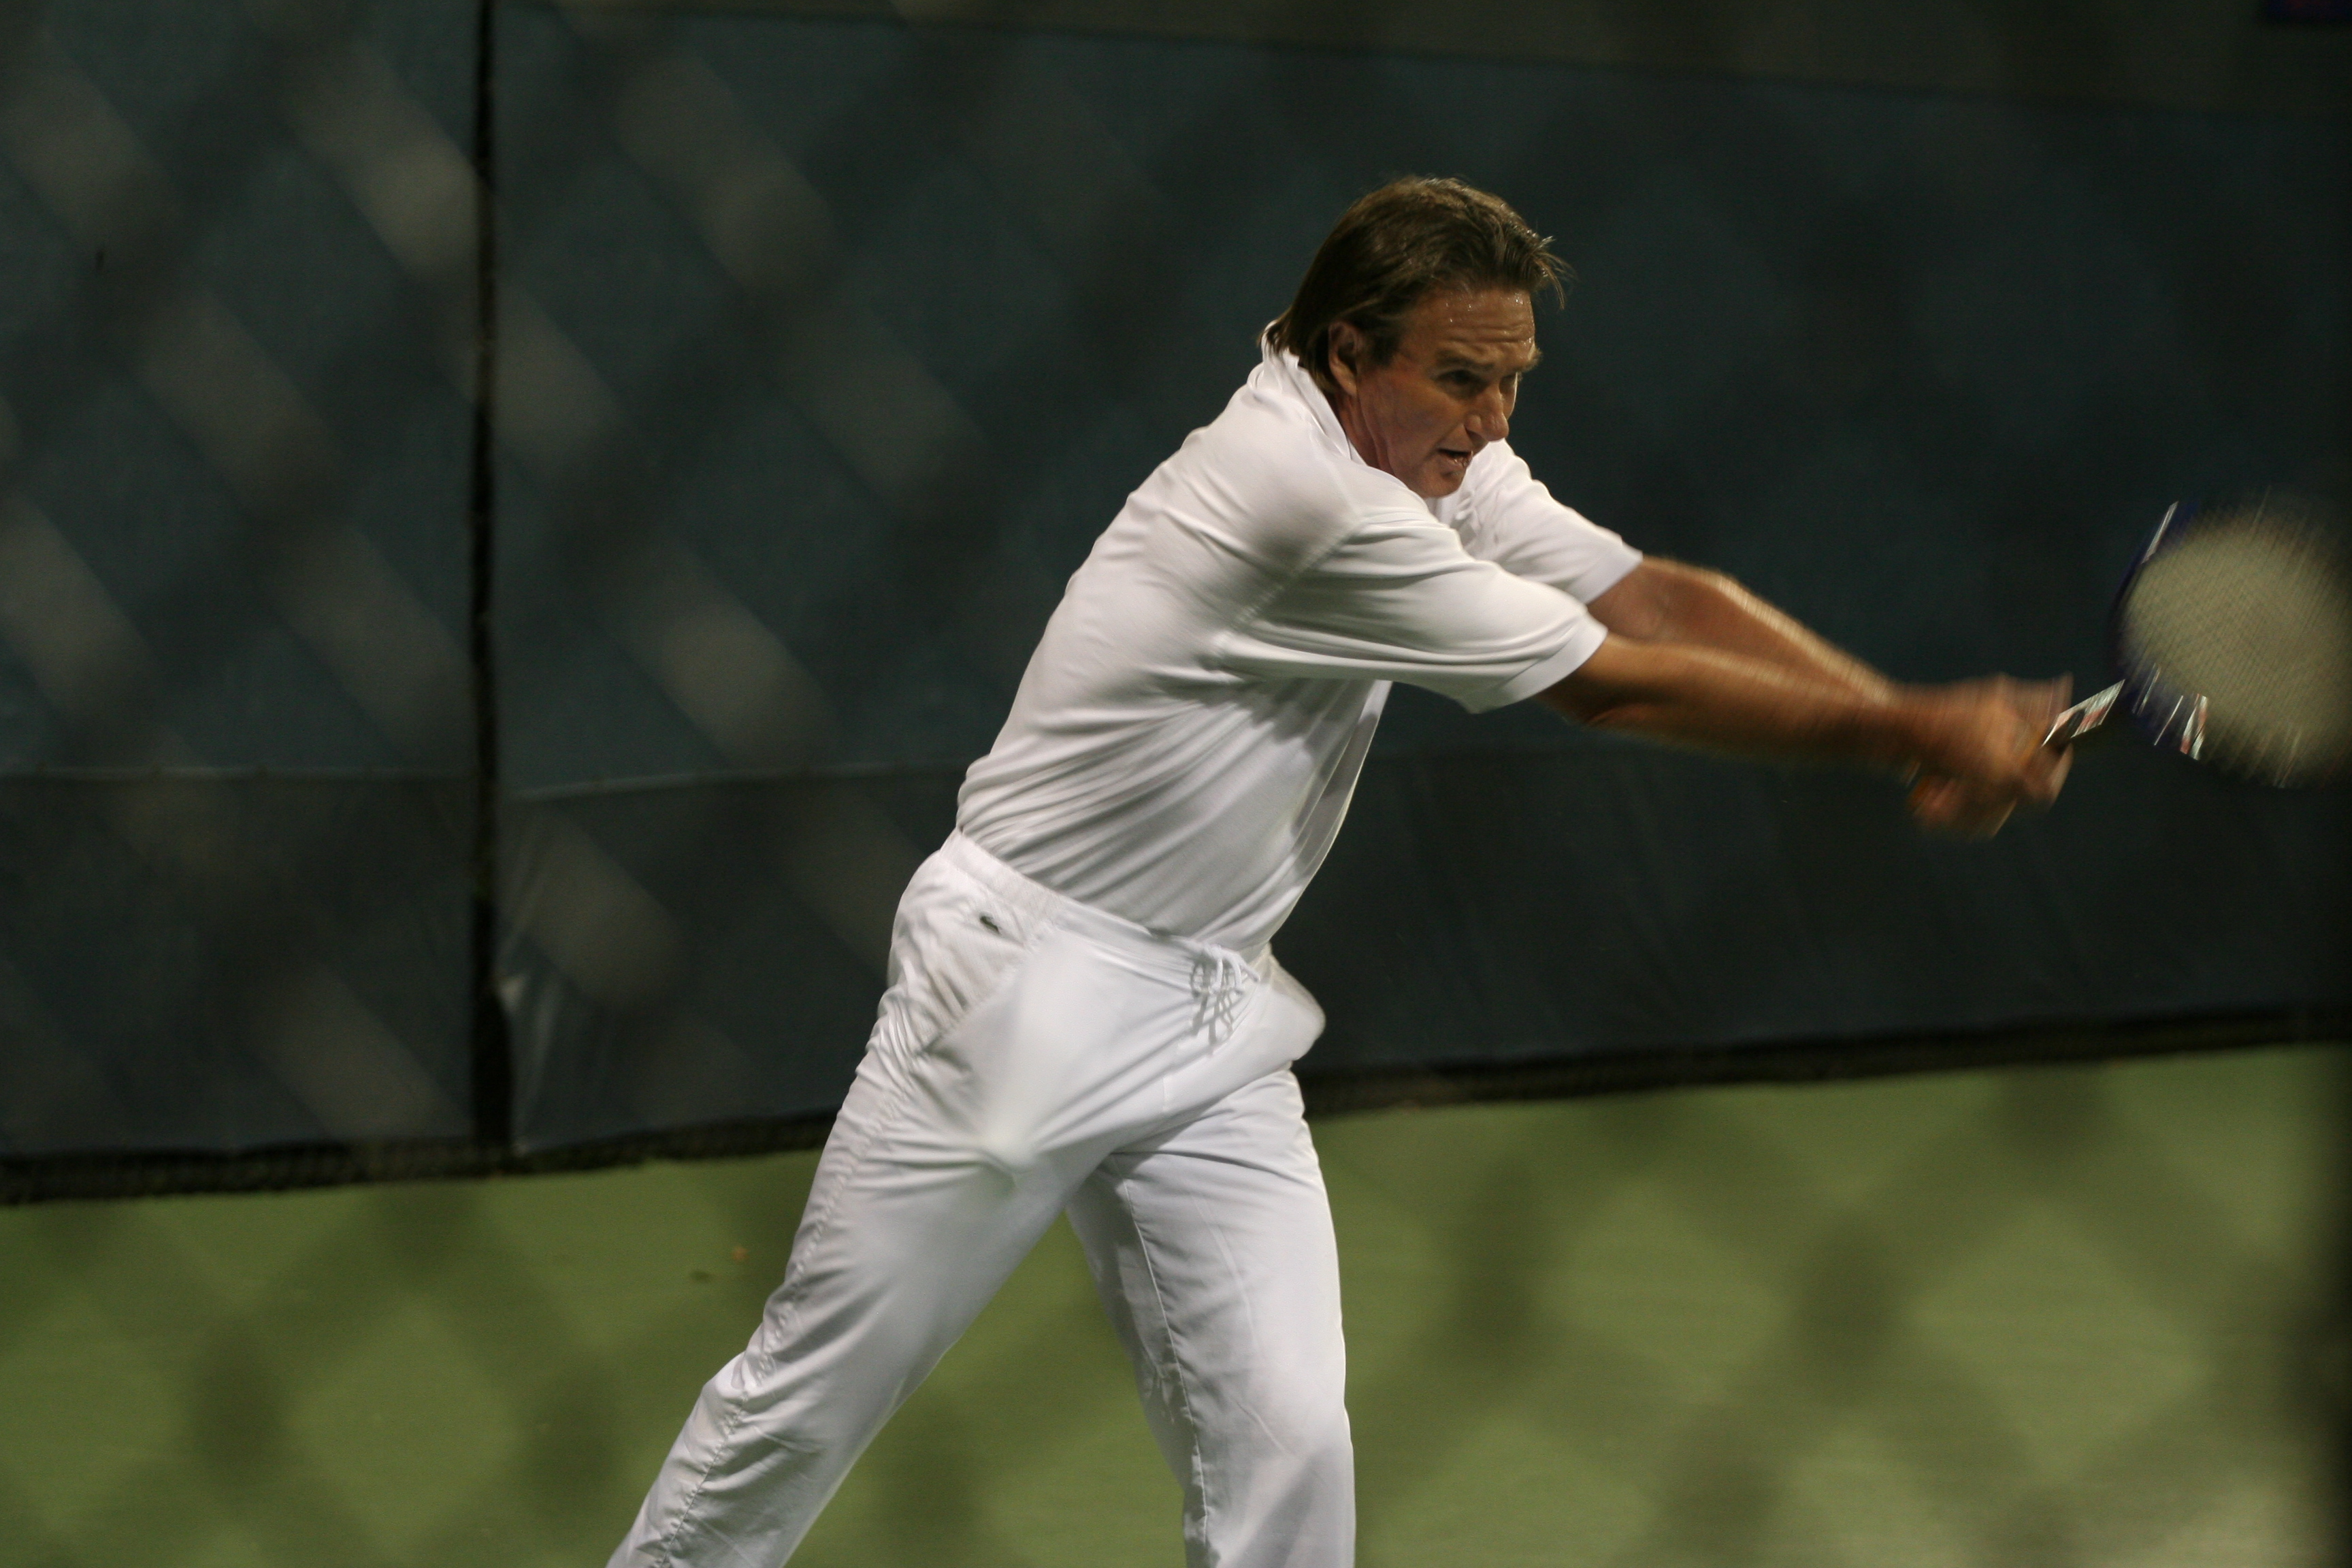 File Jimmy Connors 2009 US Open 02 Wikimedia mons